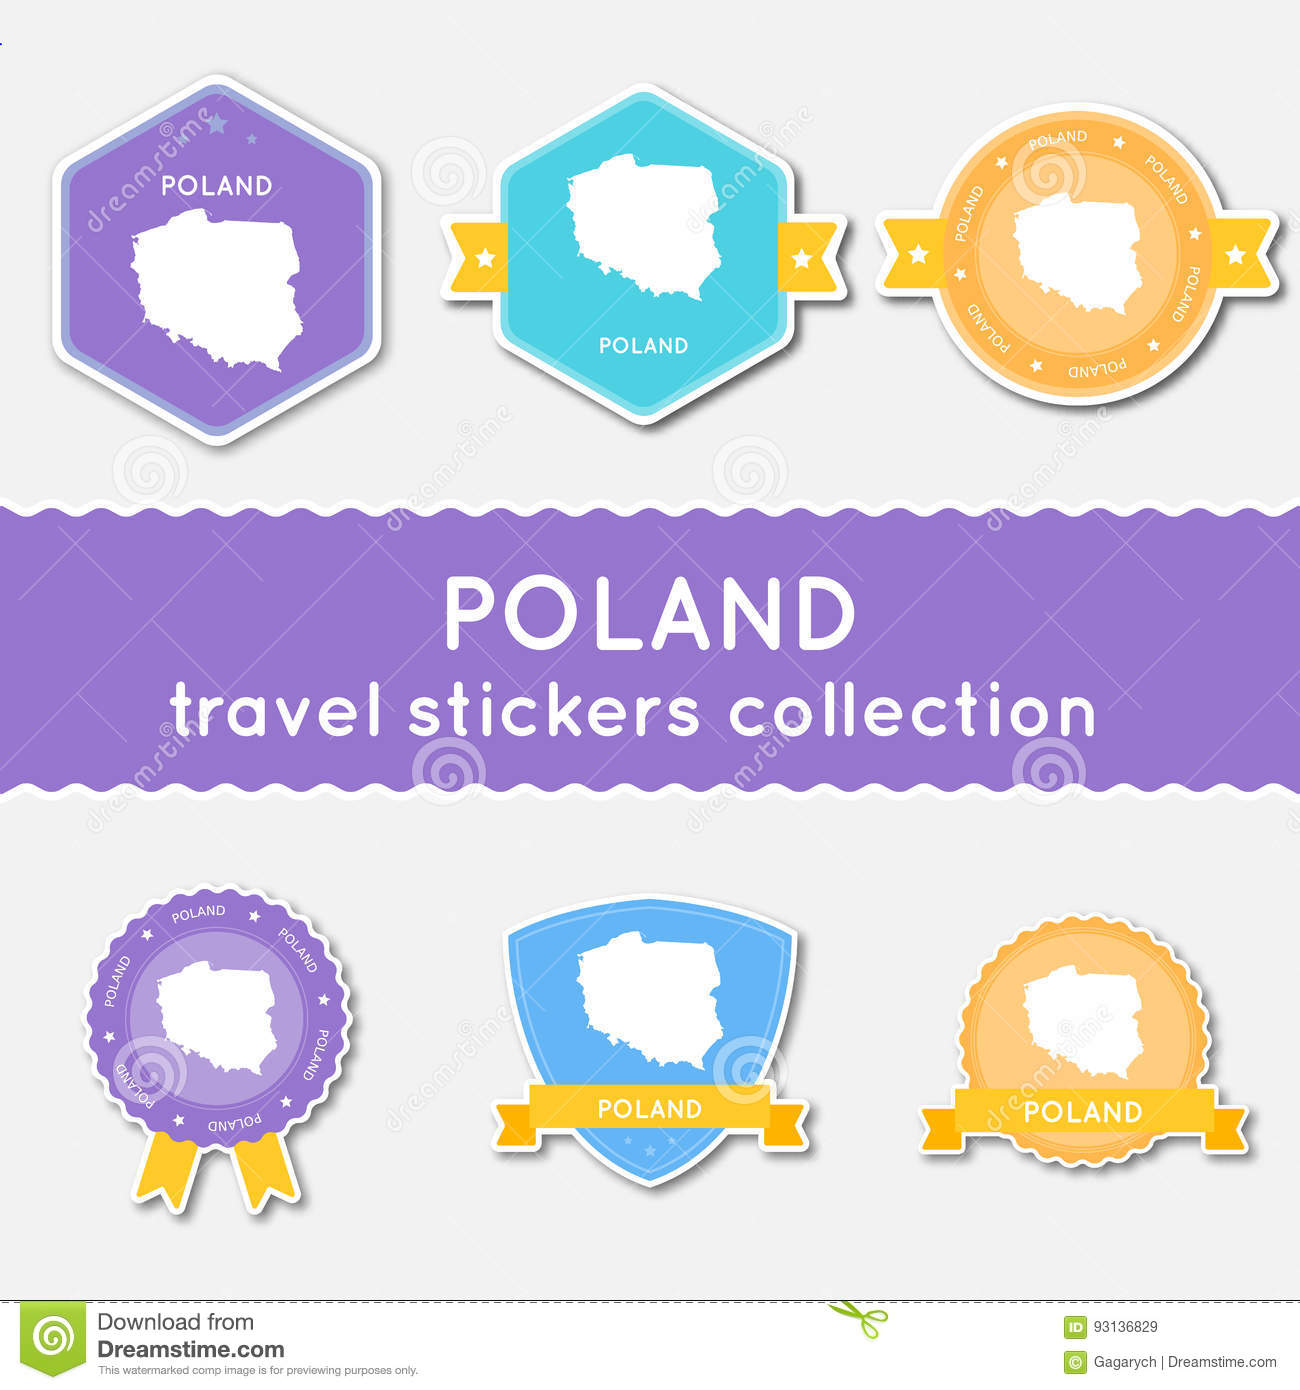 Poland travel stickers collection.